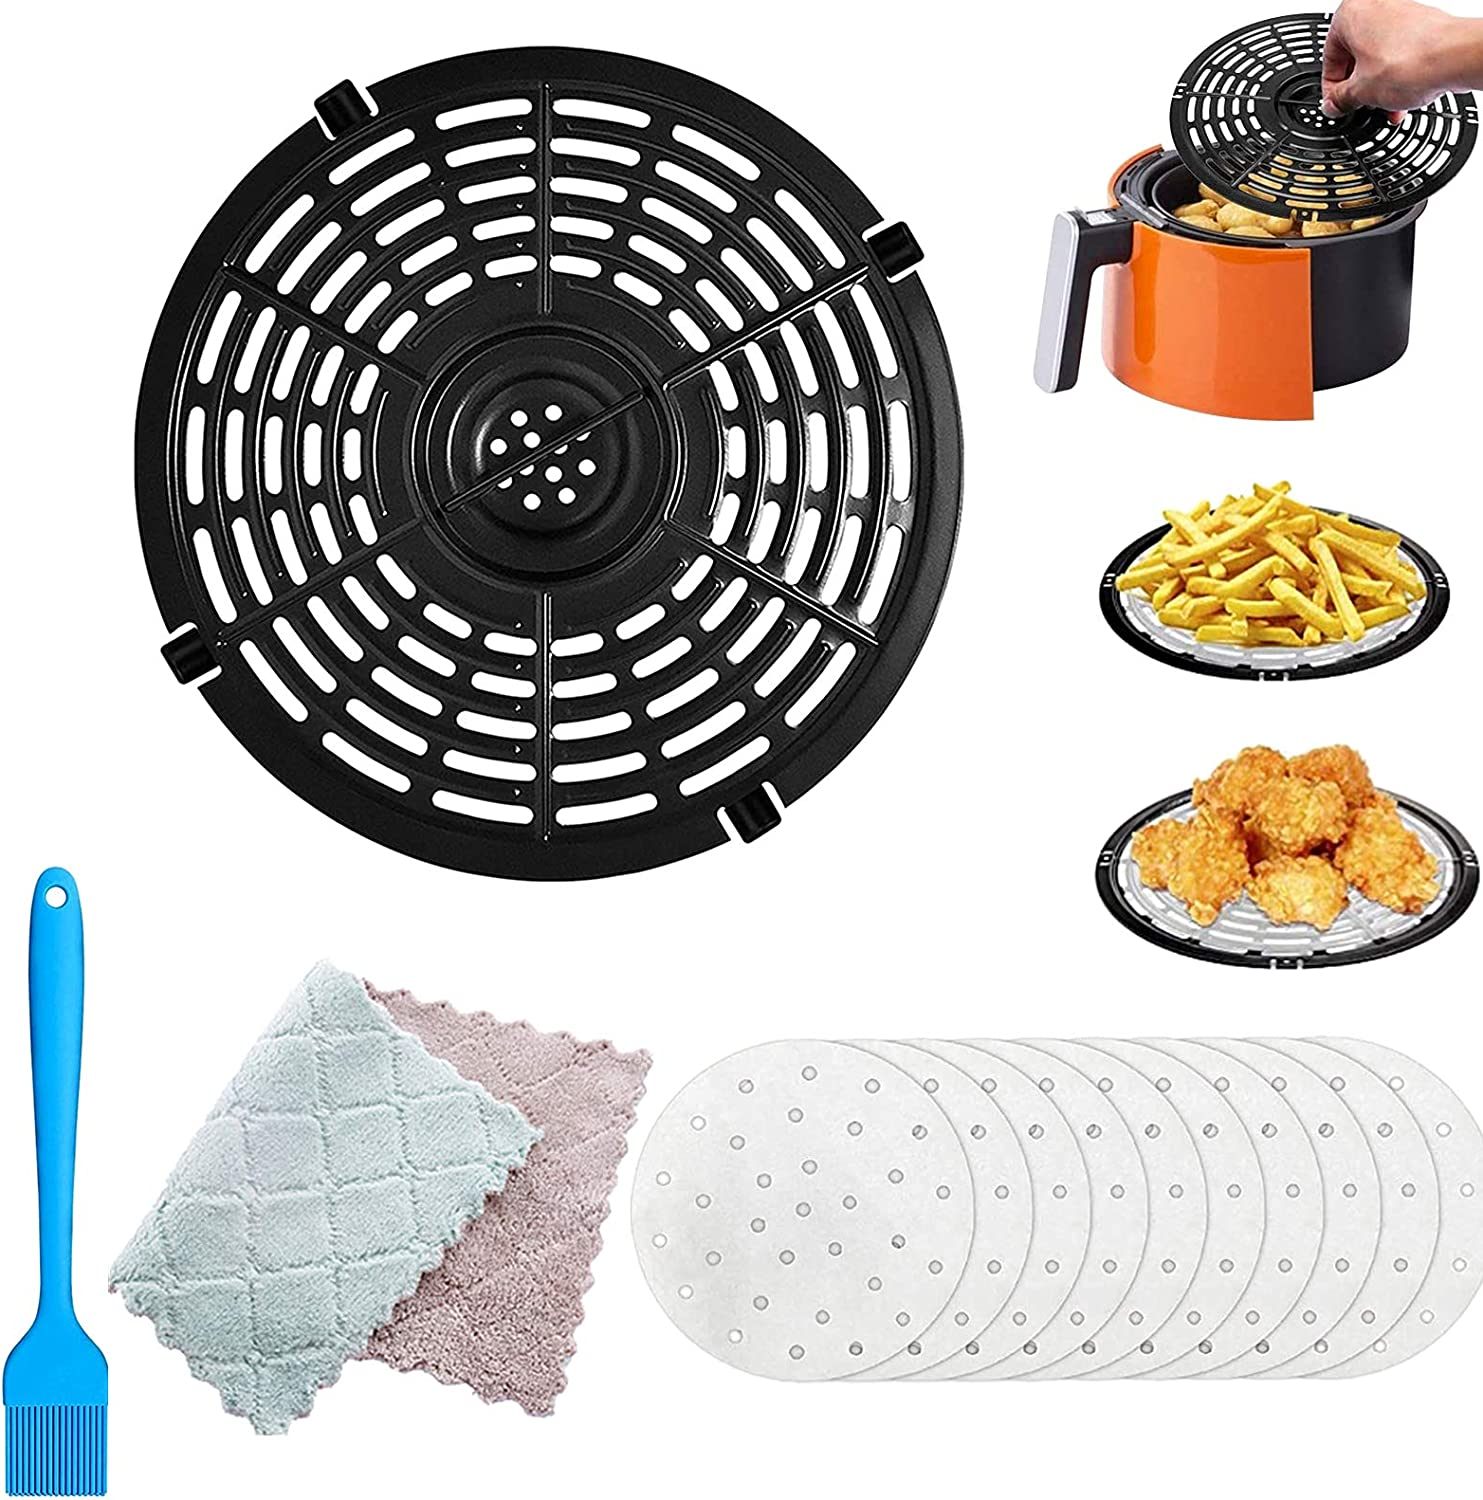 Air Fryer Replacement Grill Pan,Air Fryer Replacement Parts, Non-Stick Fry Pan Crisper Plate Suit for Air Fryers, Dishwasher Safe (Free cleaning cloth.Oil brush and filter paper)(168)